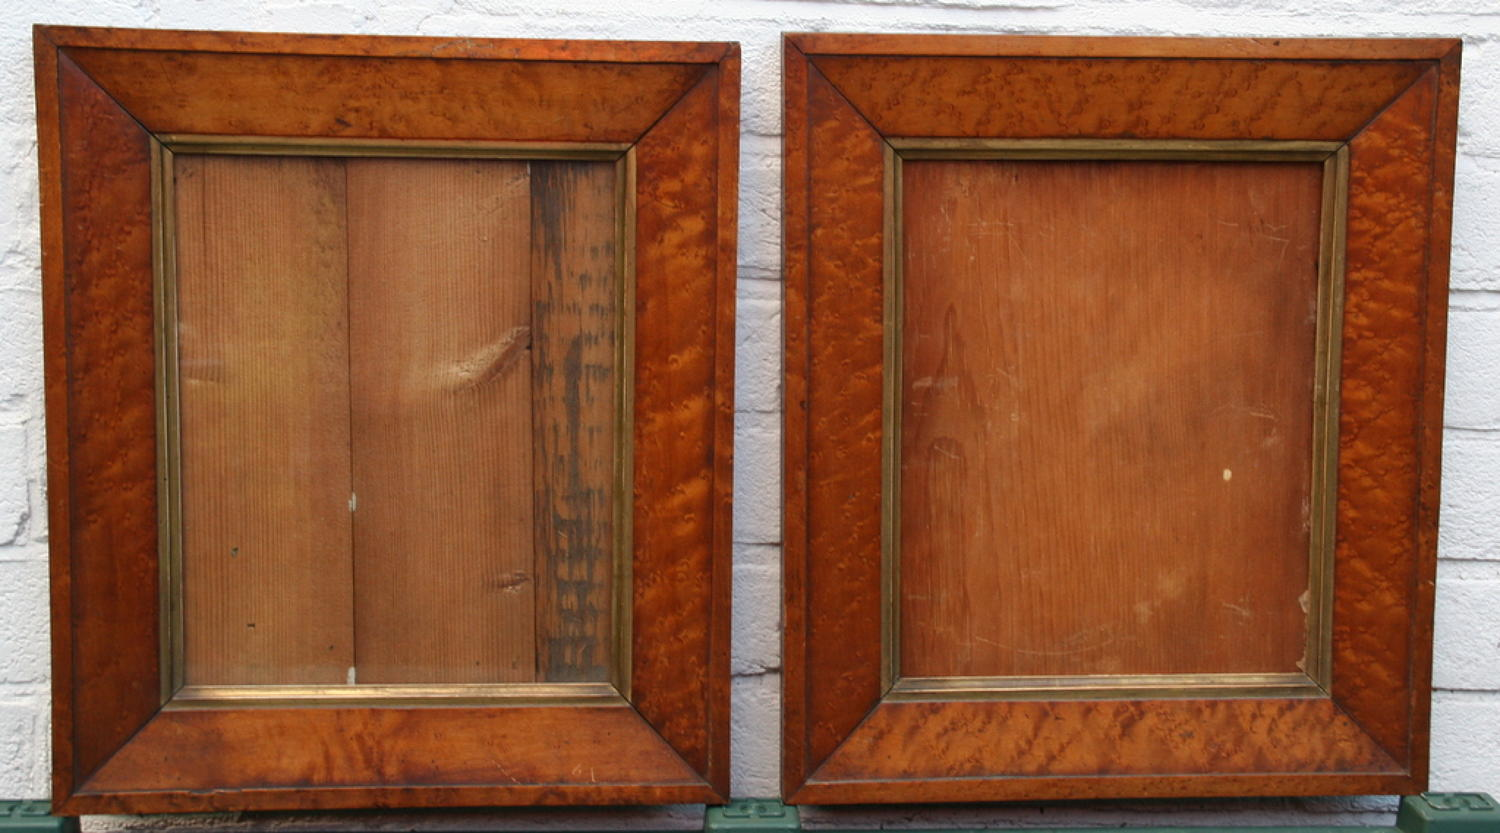 A Pair of Birds eye maple Frames 19th century